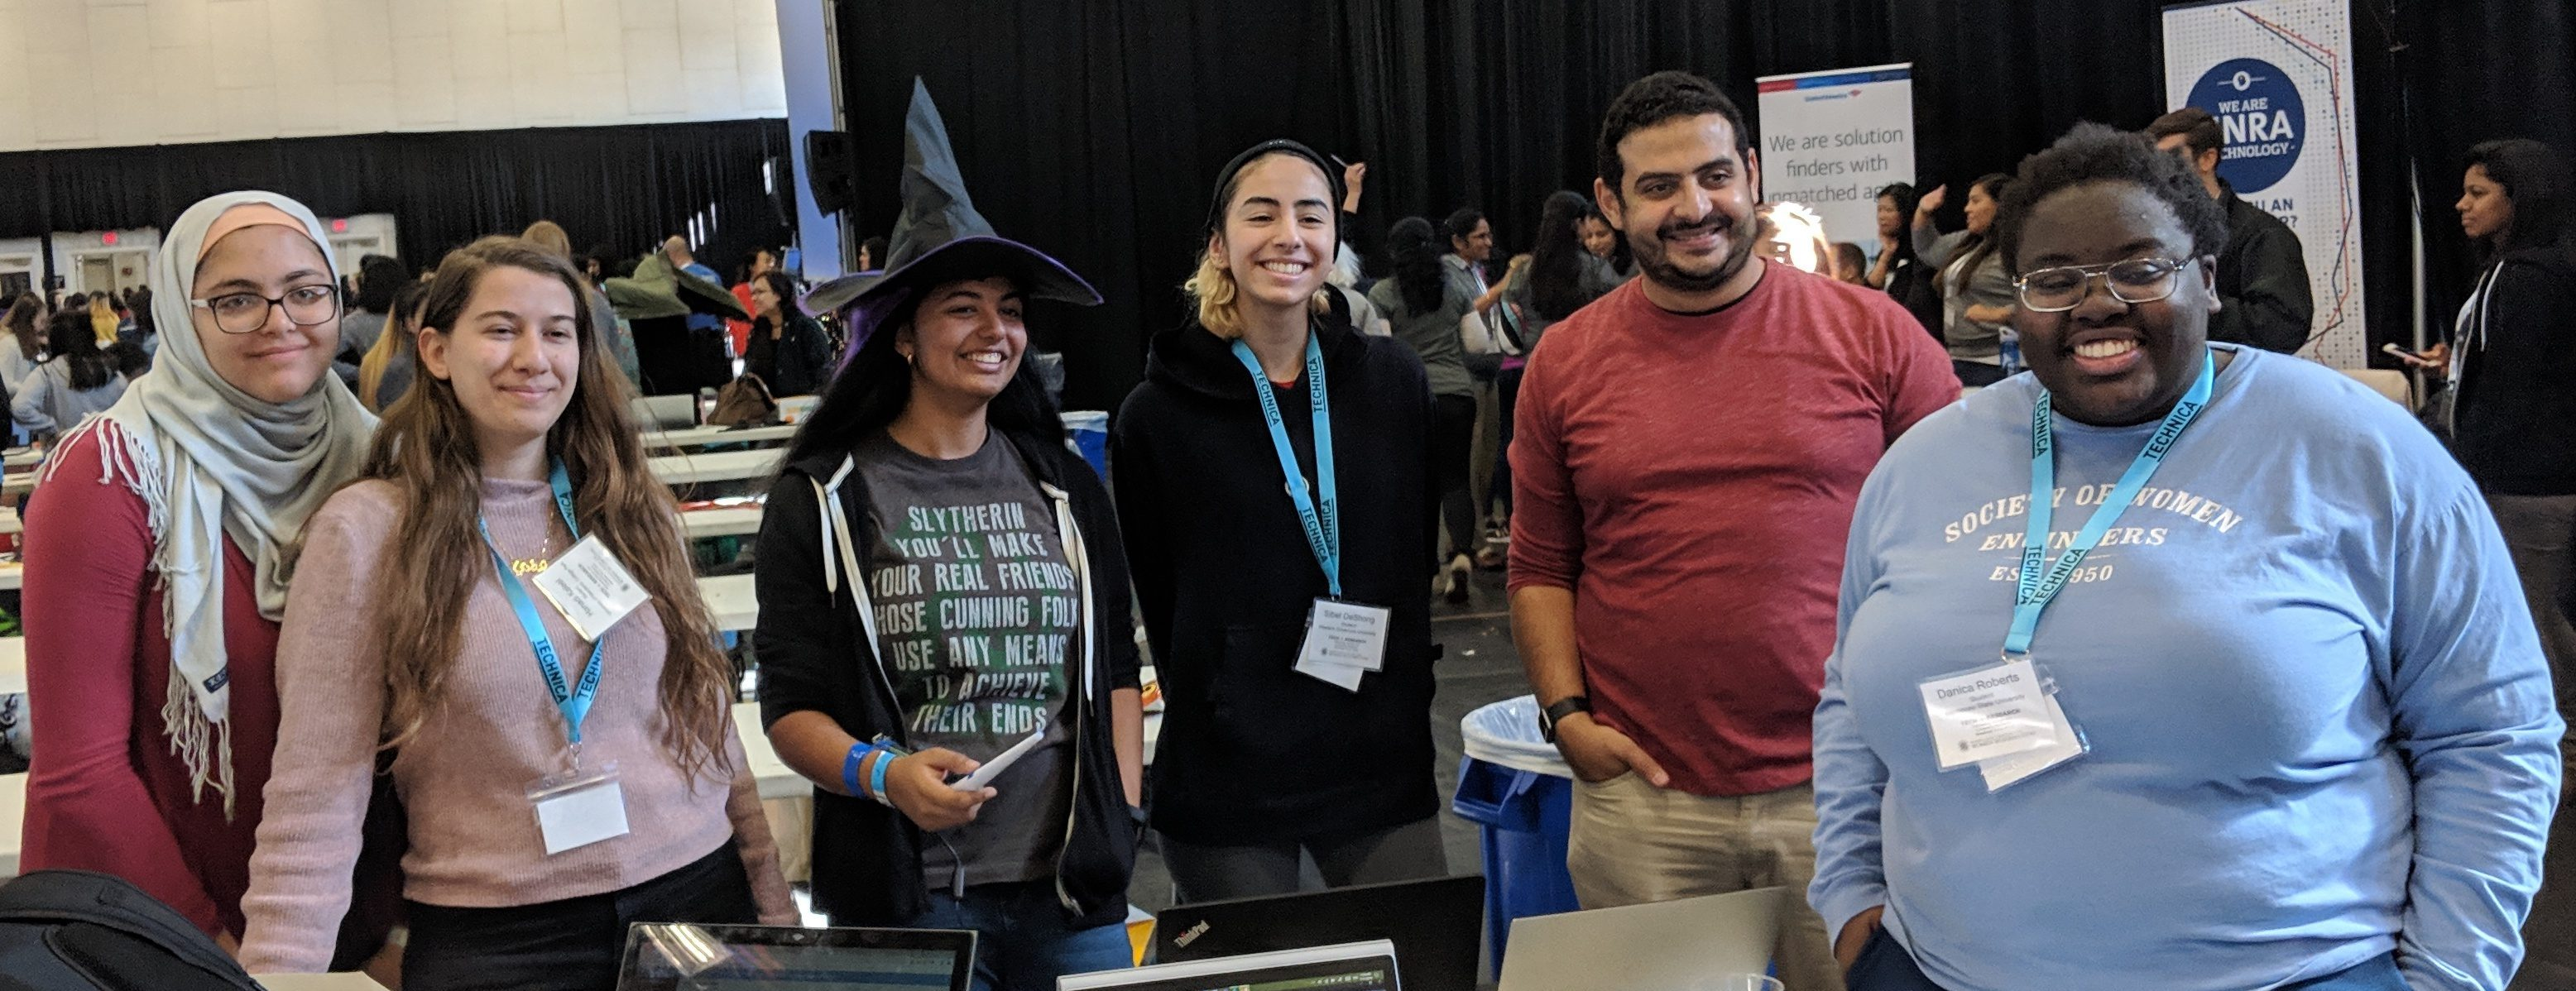 Tech + Research: Welcoming Women to Computing Research